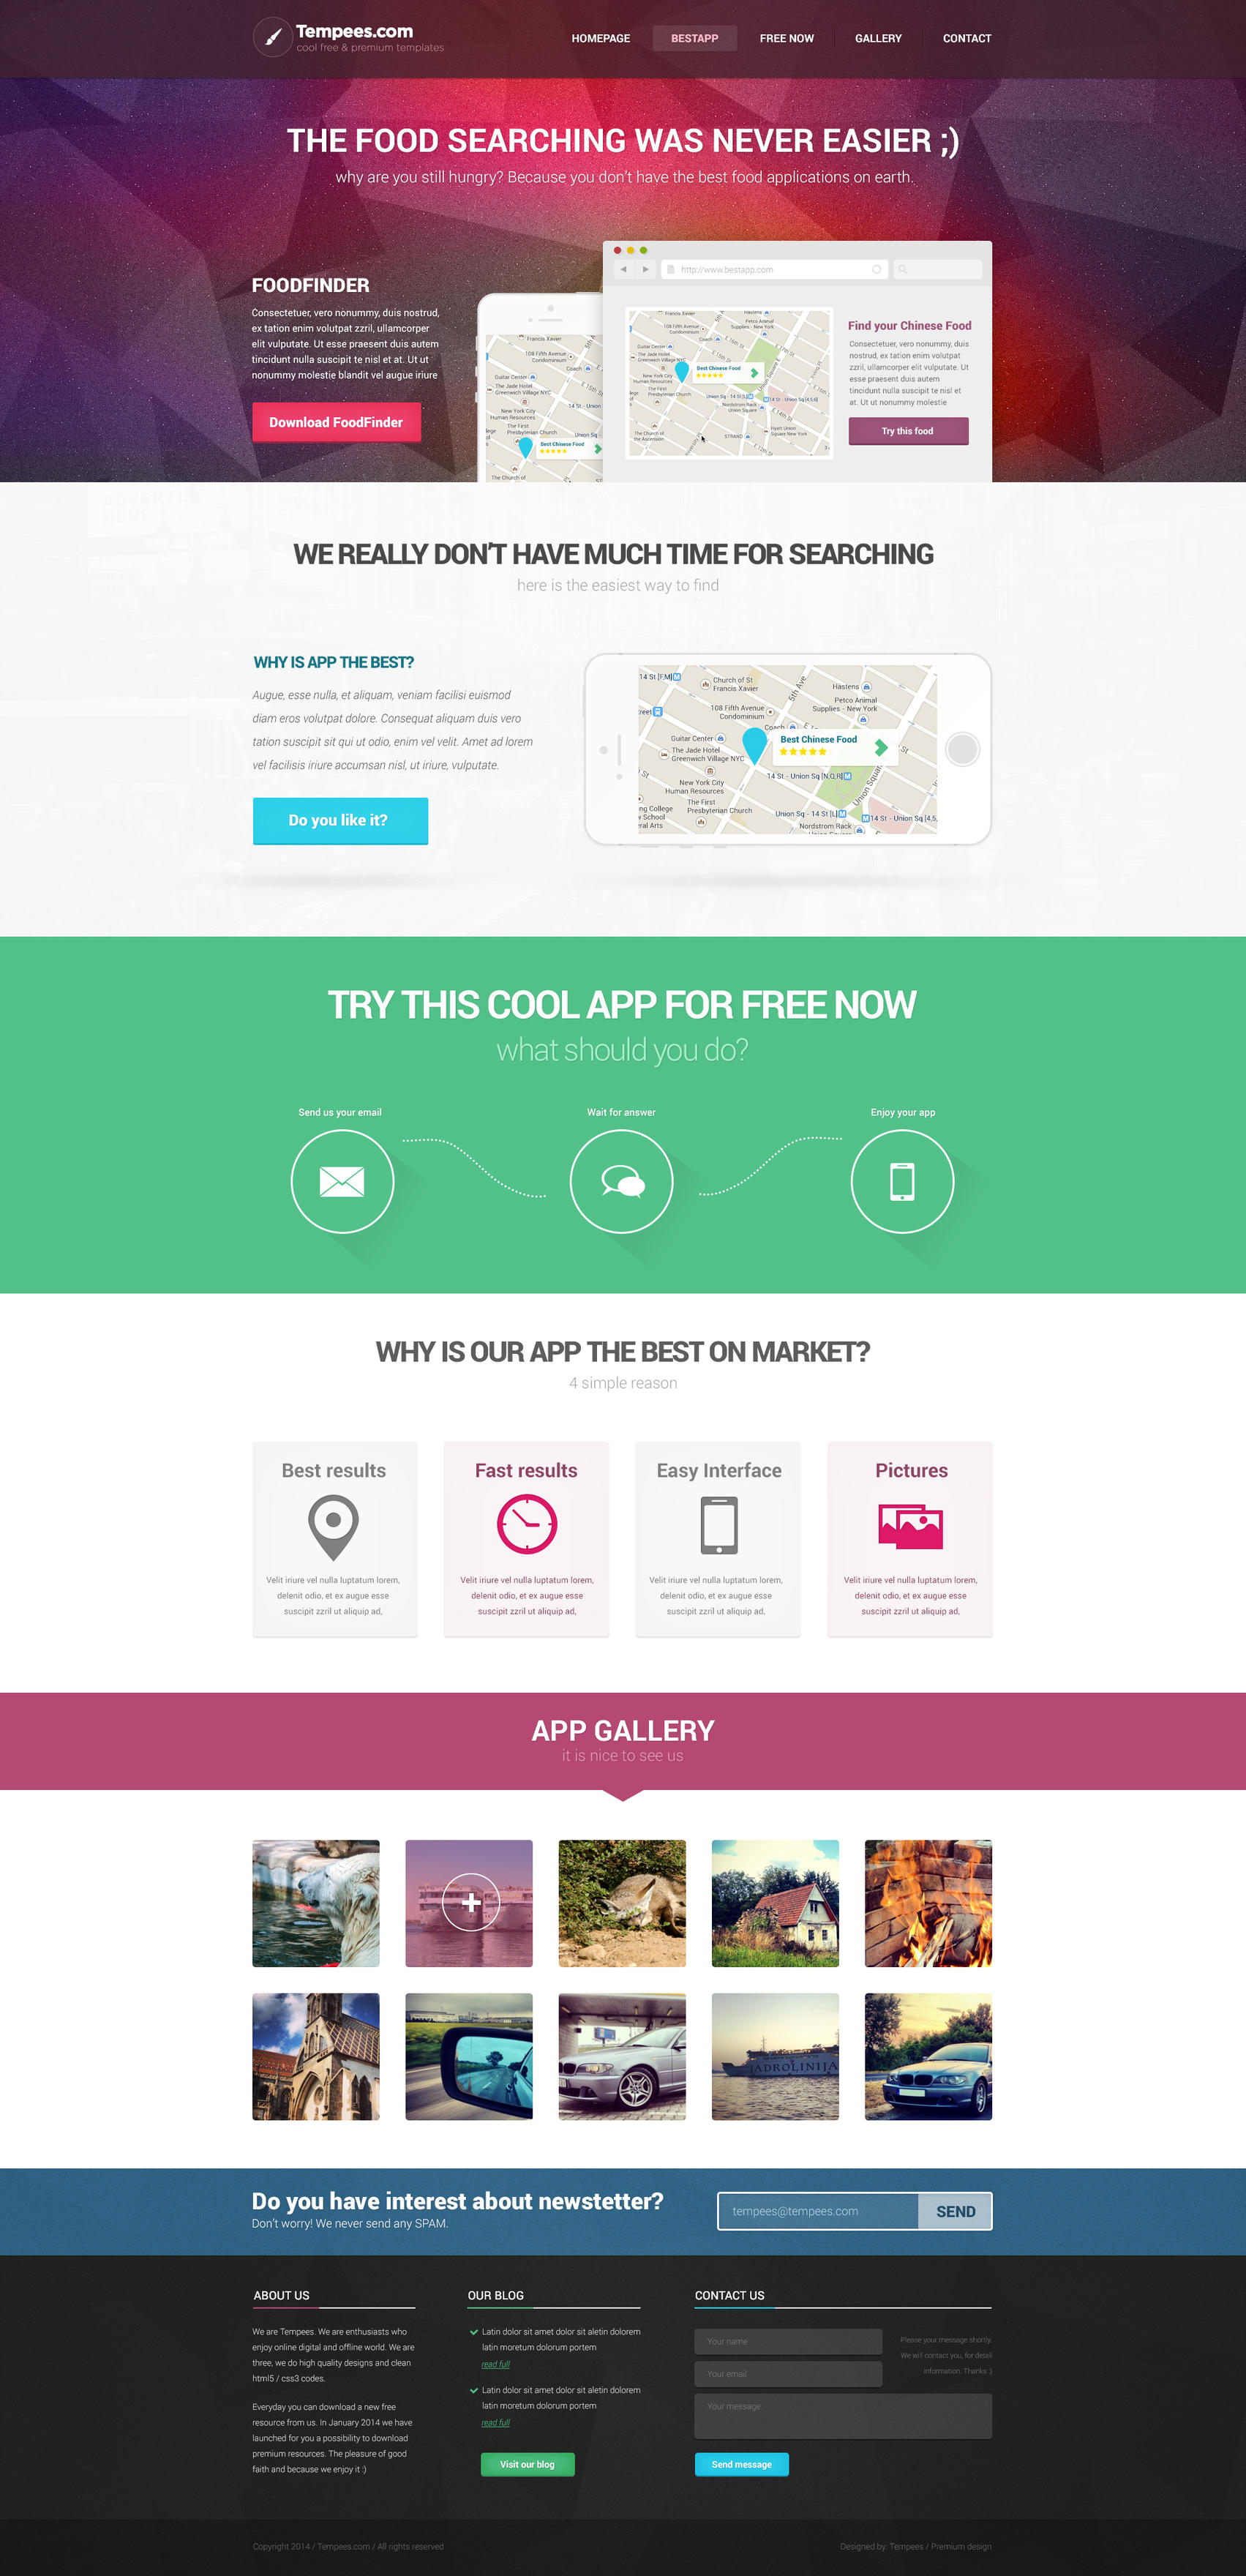 App Try Landindpage FREE PSD Template by tempeescom